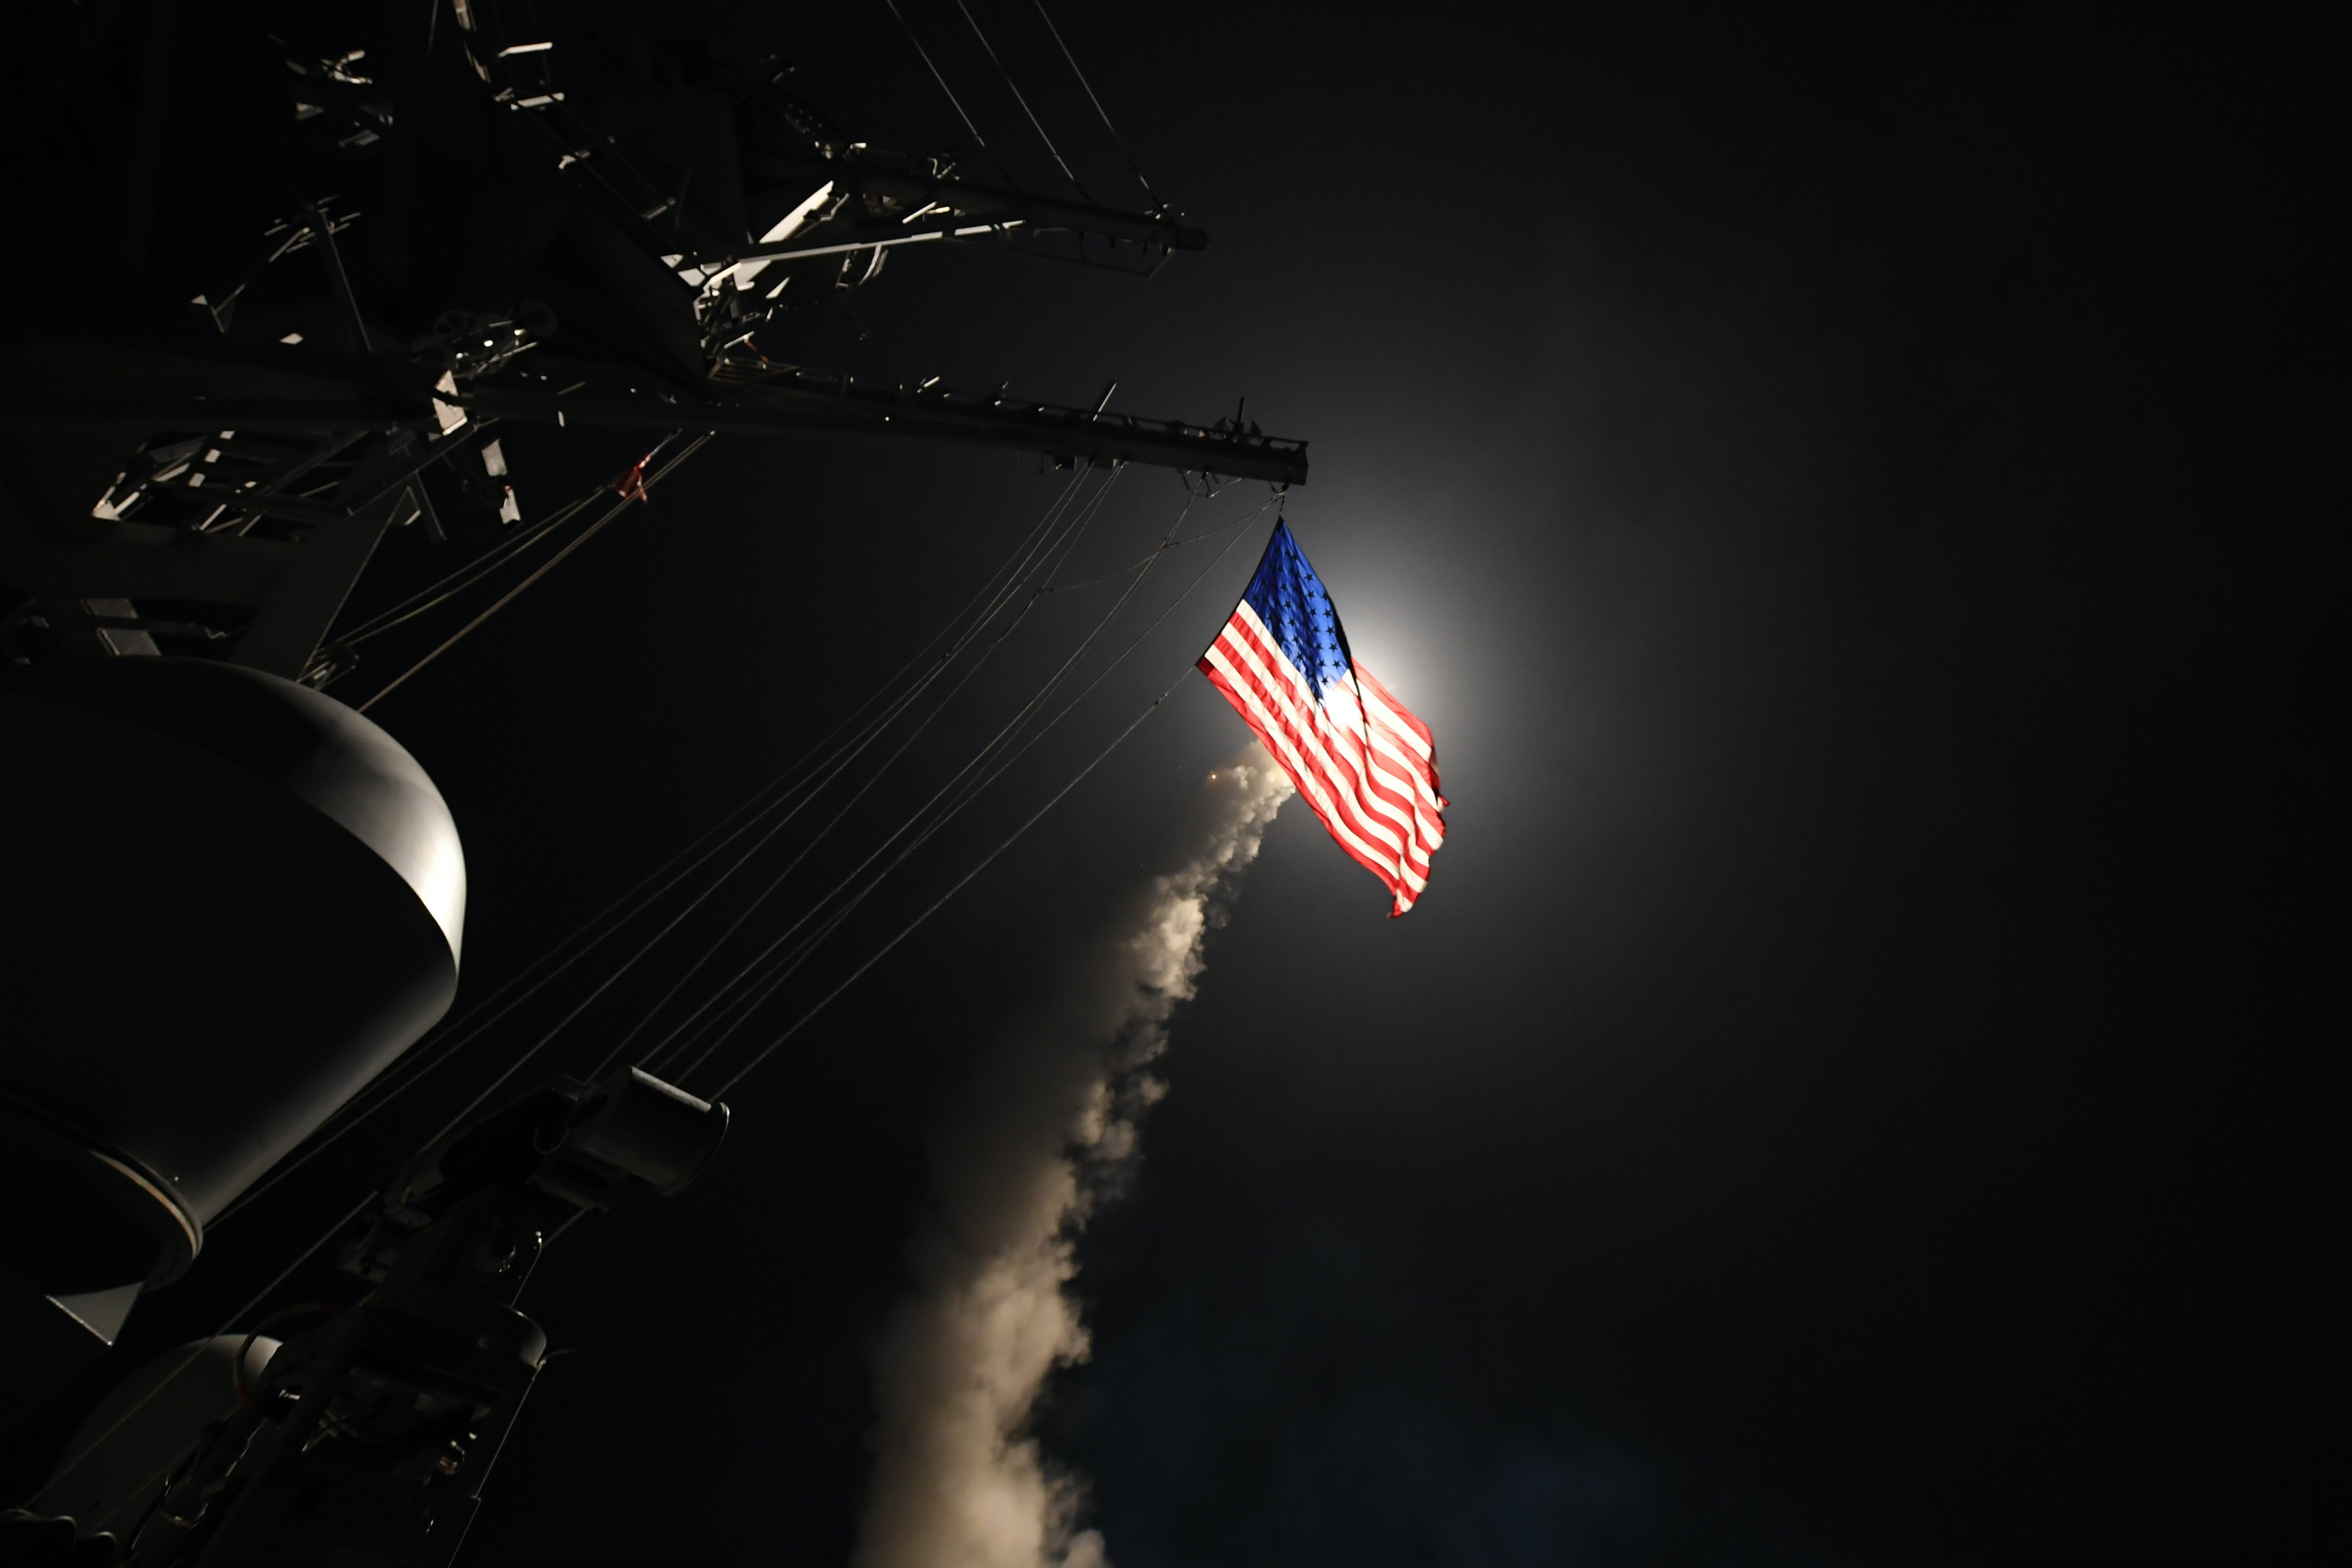 The Tomahawk missile, explained: Everything you need to know